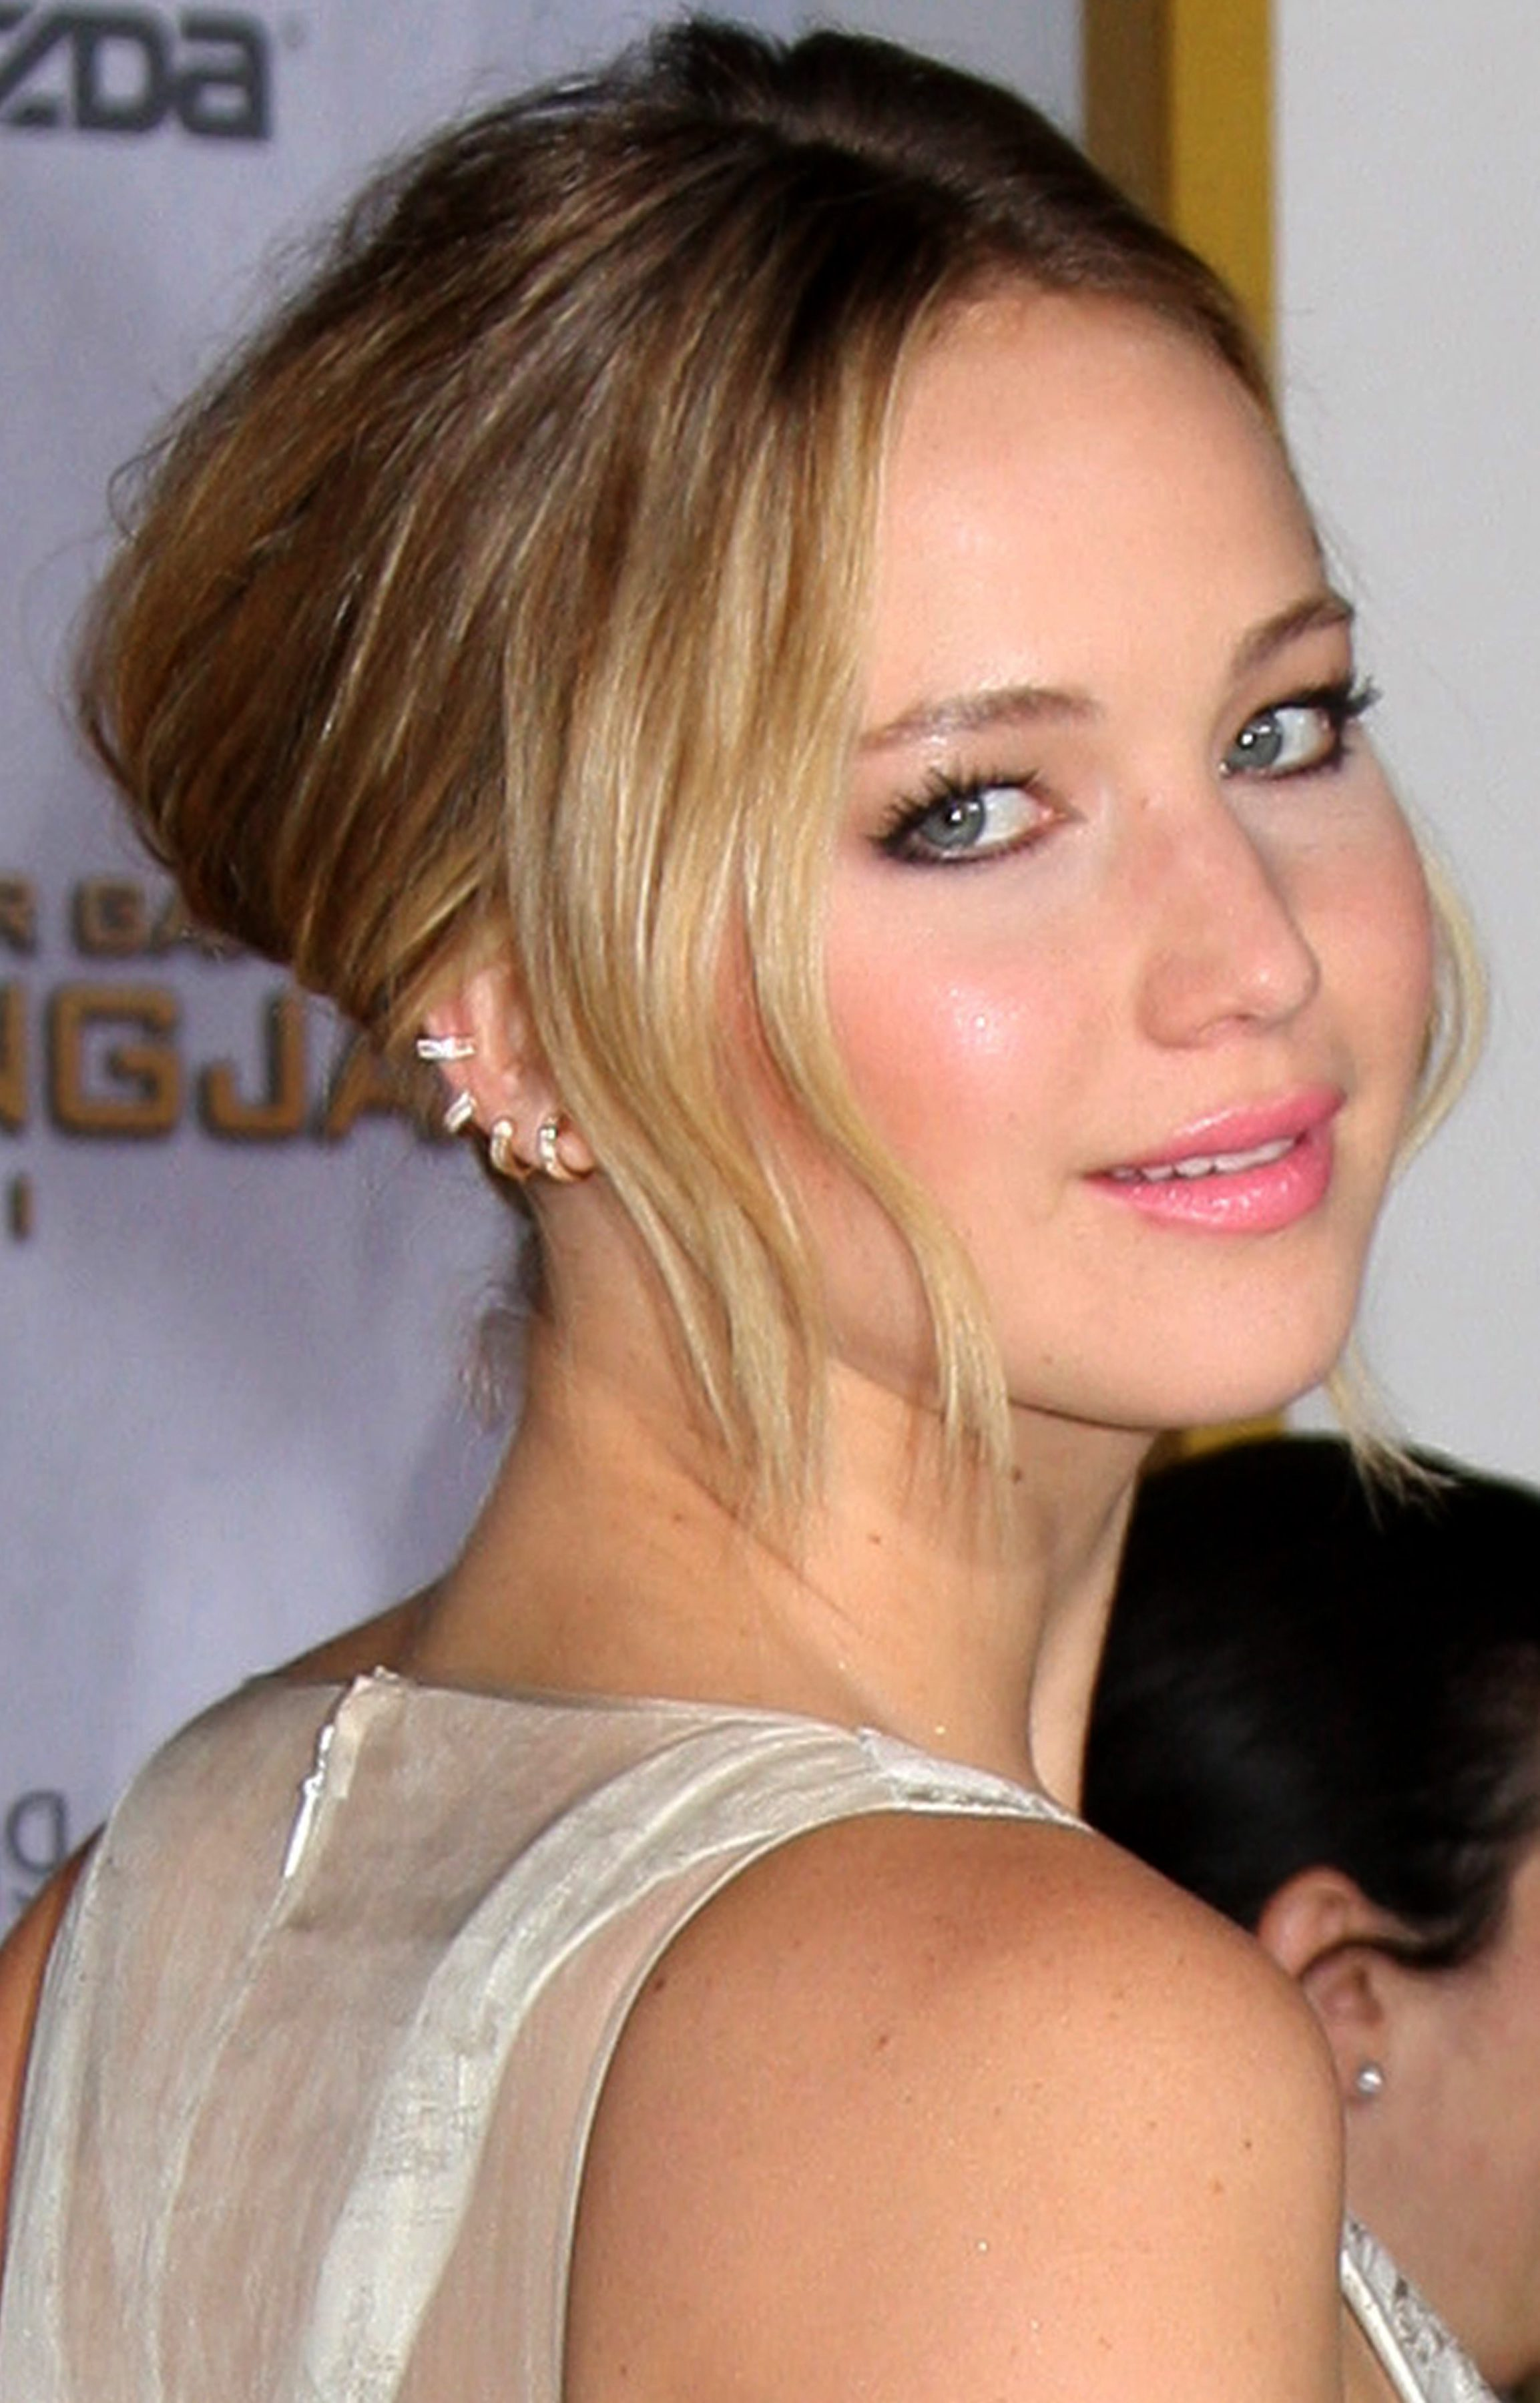 Jennifer Lawrence with That Rounded Back Bun